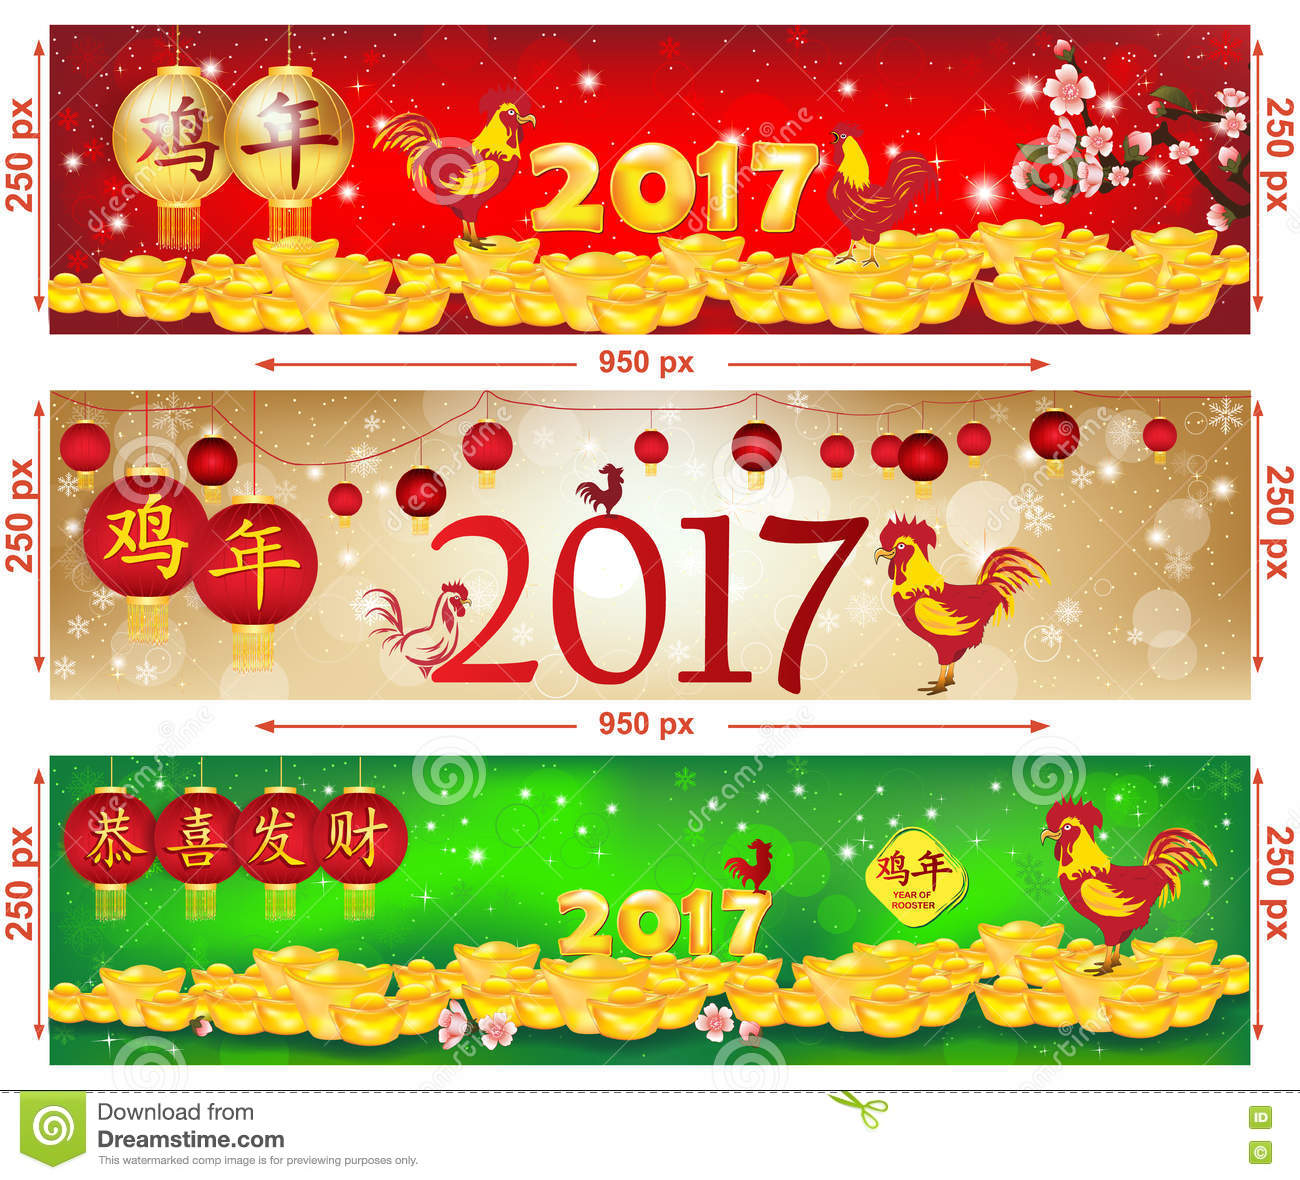 billboard banners set for chinese new year 2017 stock illustration